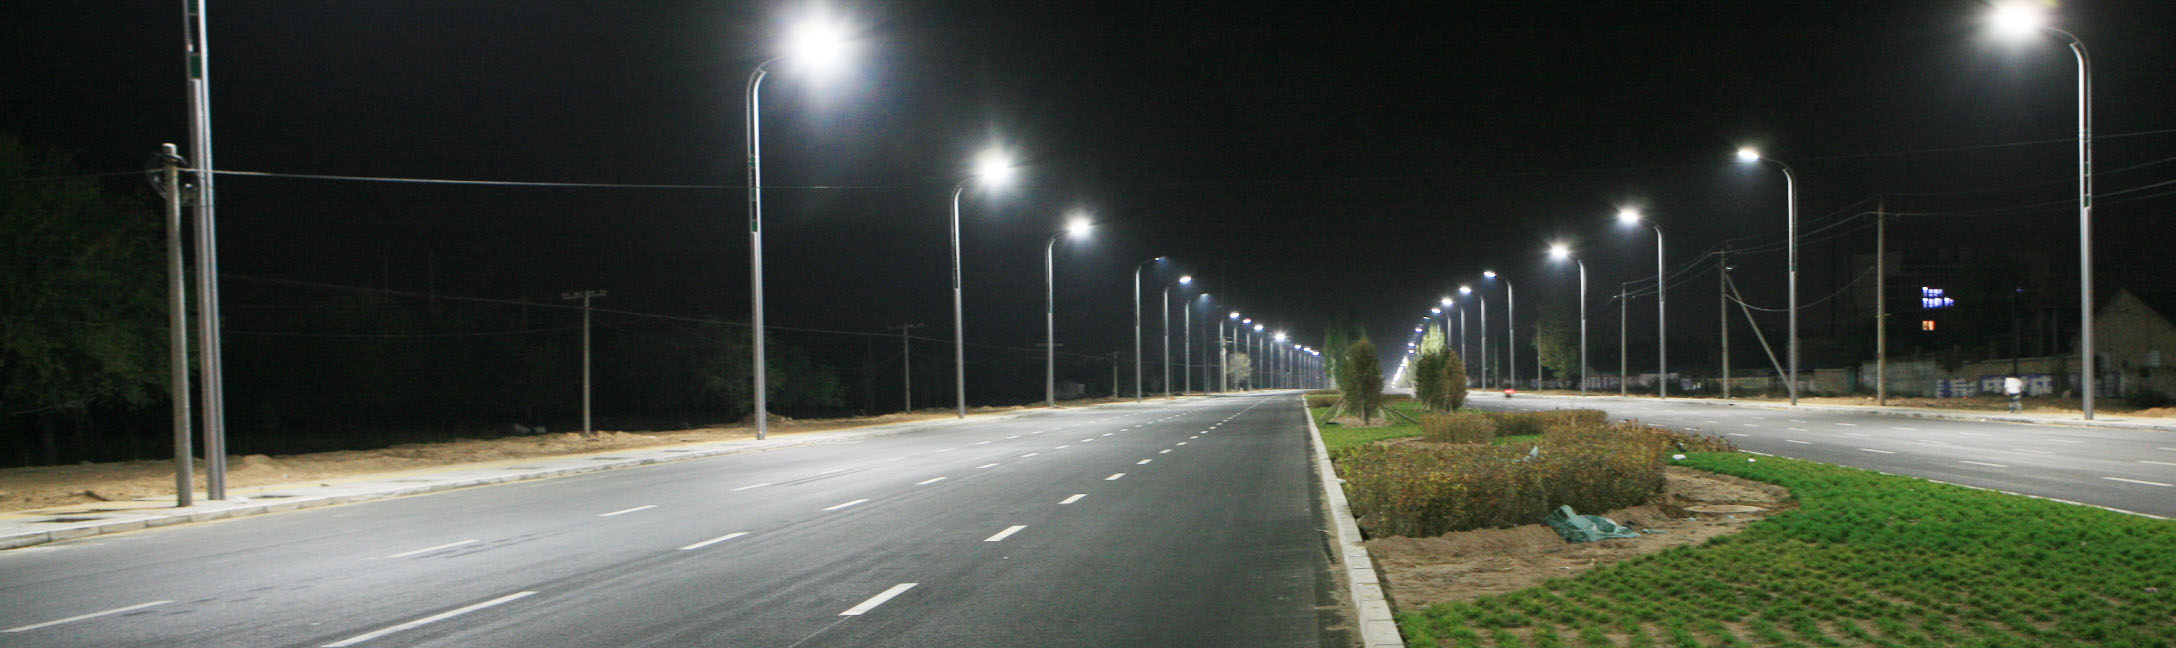 Induction-Street-Lights-cropped